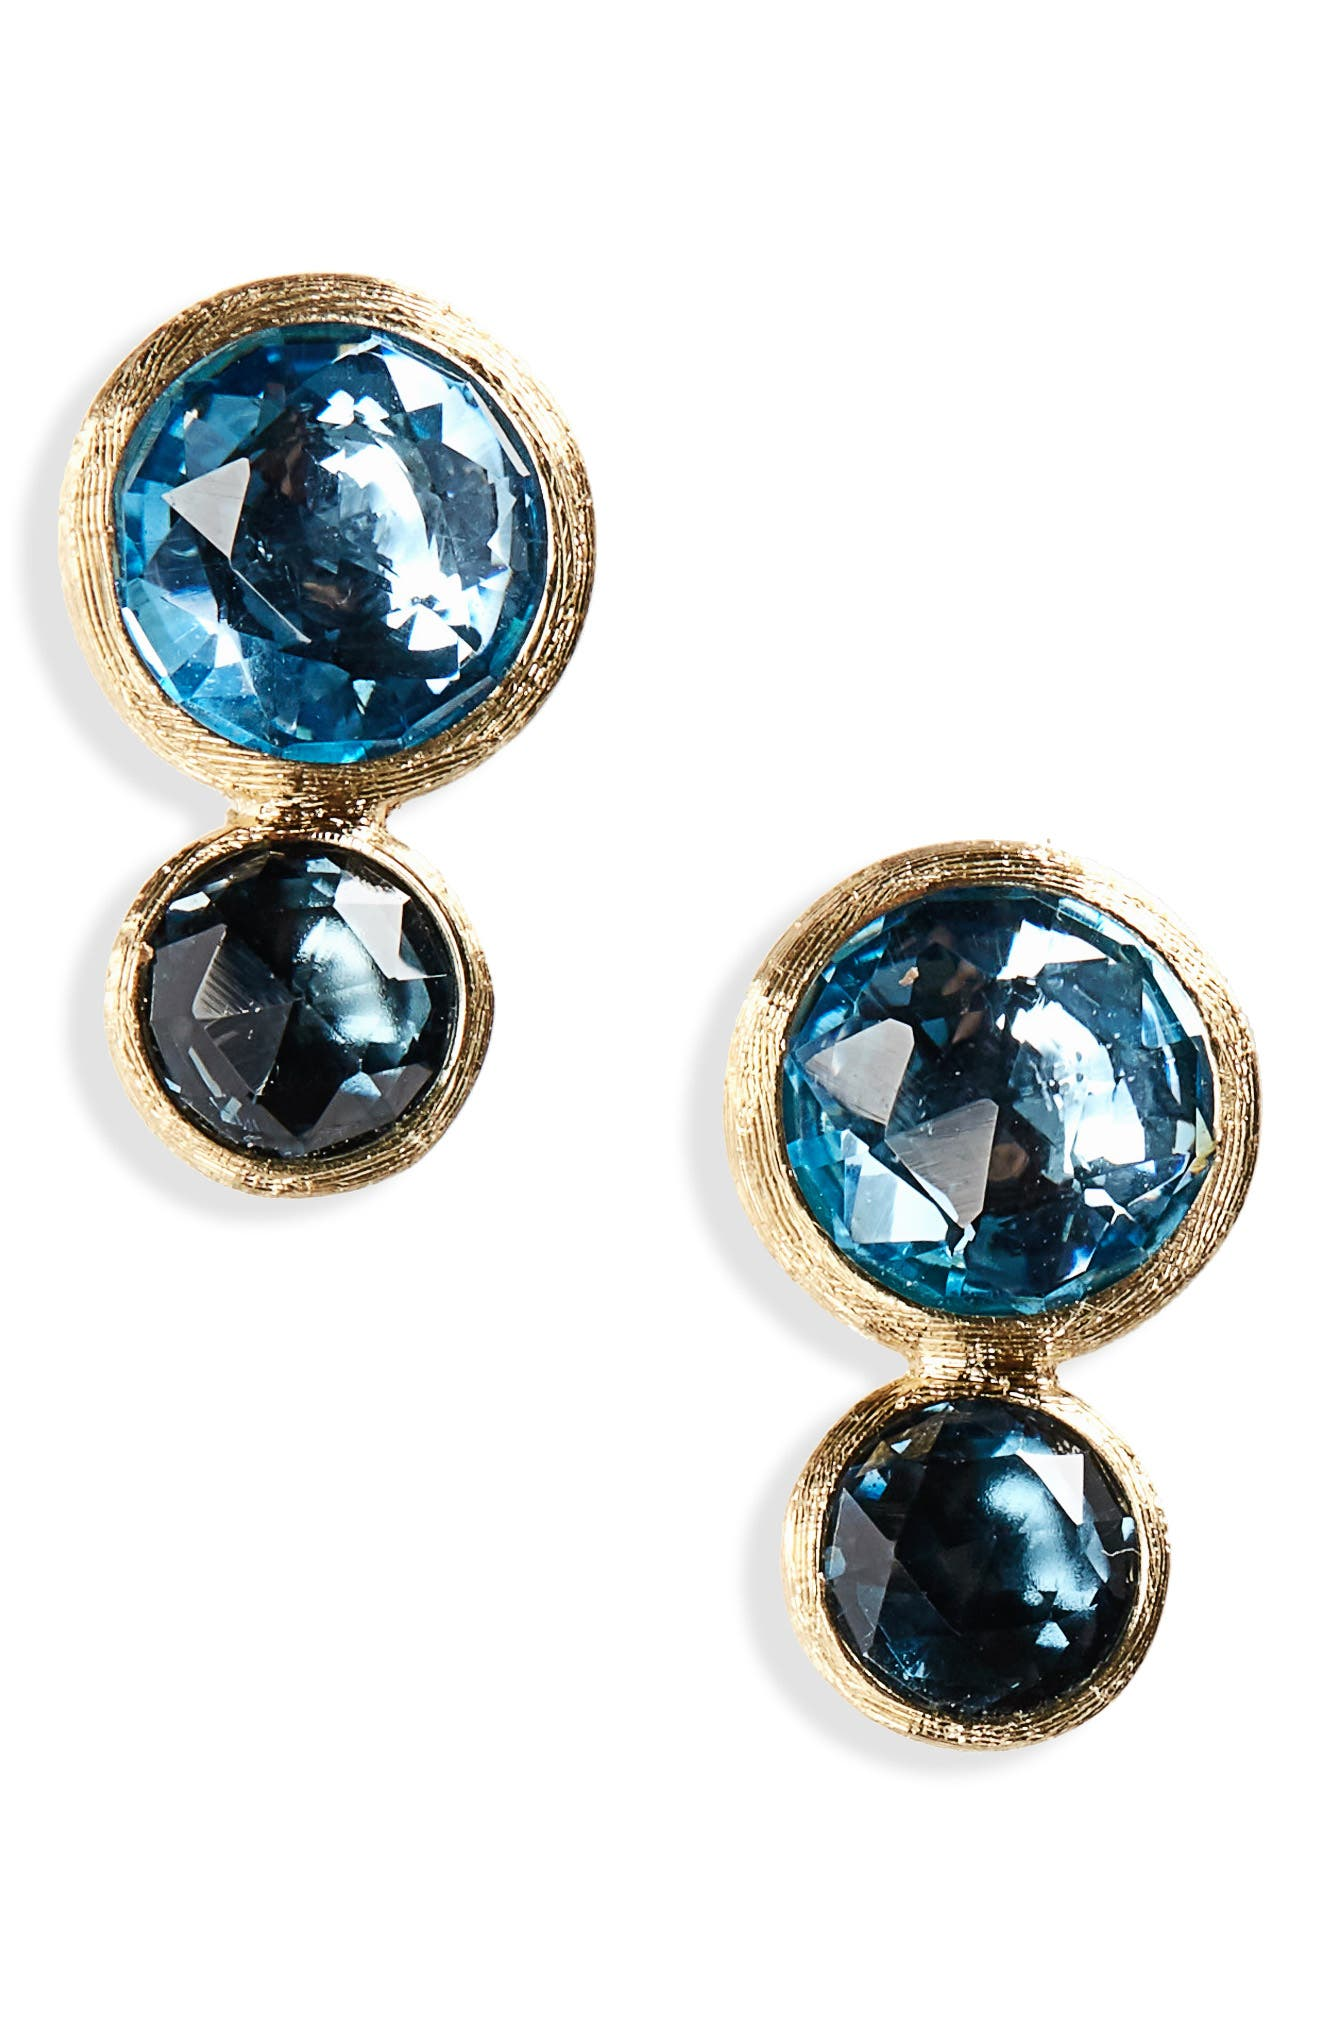 Marco Bicego Jaipur 2-Stone Blue Topaz Stud Earrings